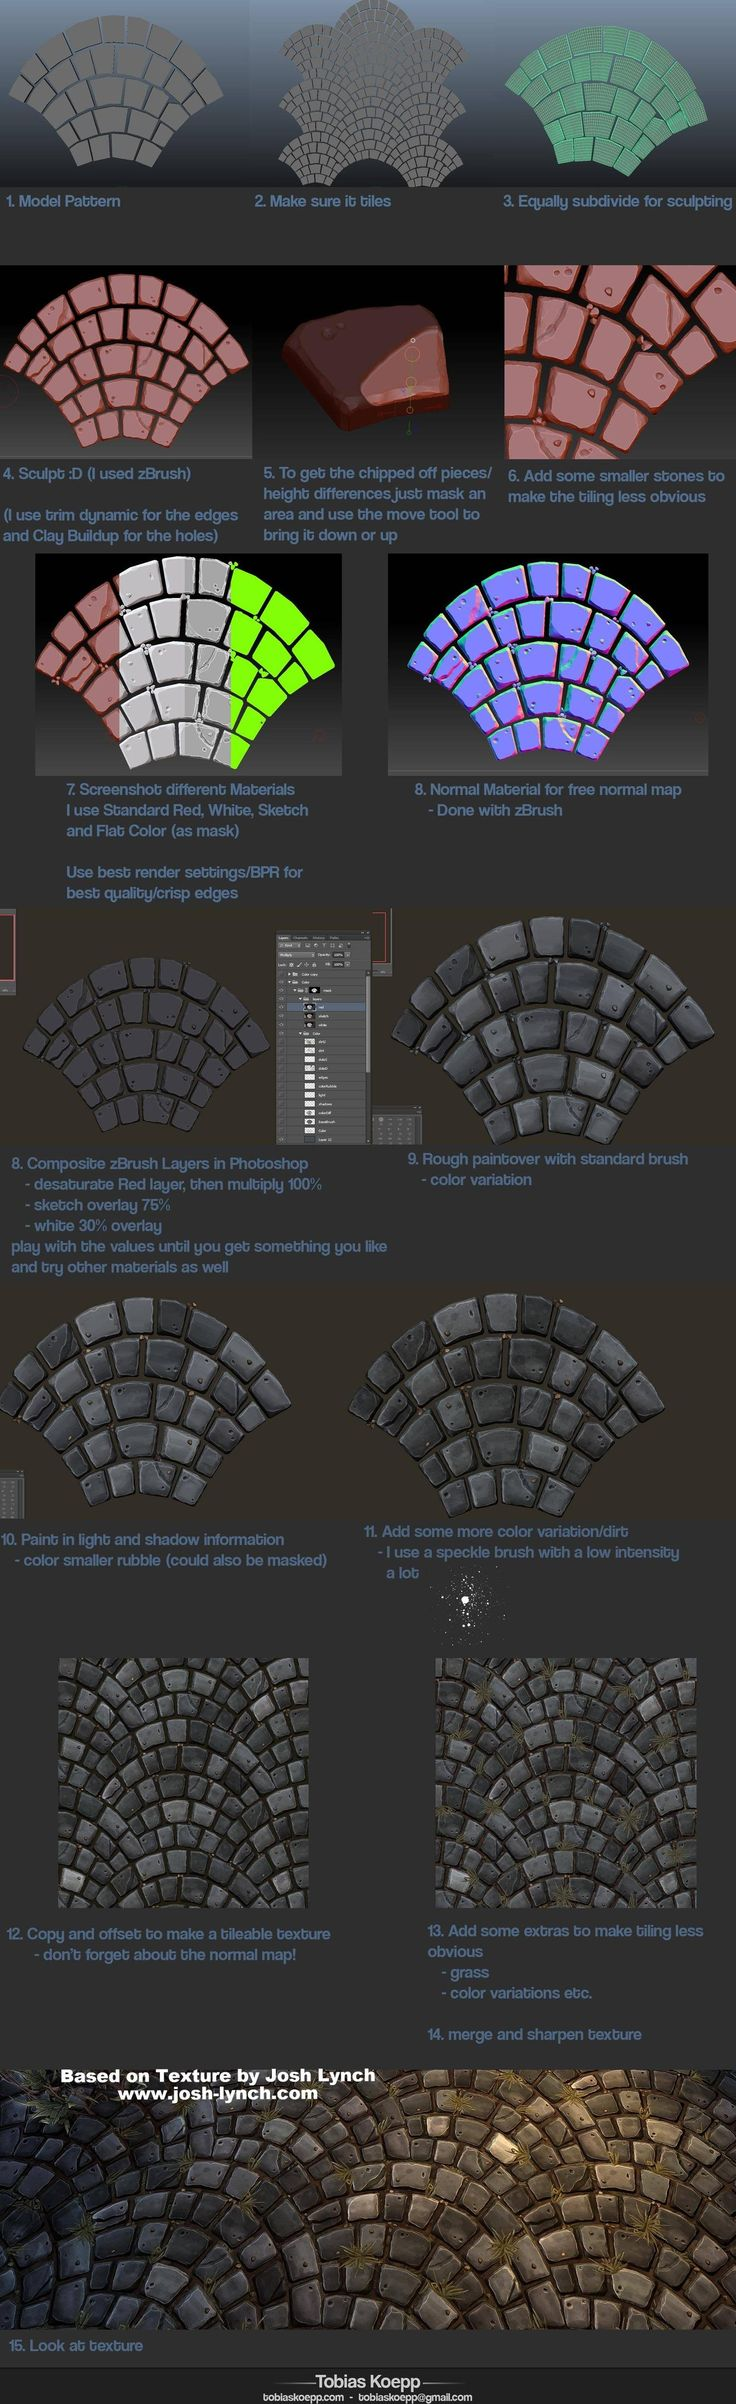 How to cobblestone tutorial | Create your own roleplaying game books w/ RPG Bard: www.rpgbard.com | Pathfinder PFRPG Dungeons and Dragons ADND DND OGL d20 OSR OSRIC Warhammer 40000 40k Fantasy Roleplay WFRP Star Wars Exalted World of Darkness Dragon Age Iron Kingdoms Fate Core System Savage Worlds Shadowrun Dungeon Crawl Classics DCC Call of Cthulhu CoC Basic Role Playing BRP Traveller Battletech The One Ring TOR fantasy science fiction horror